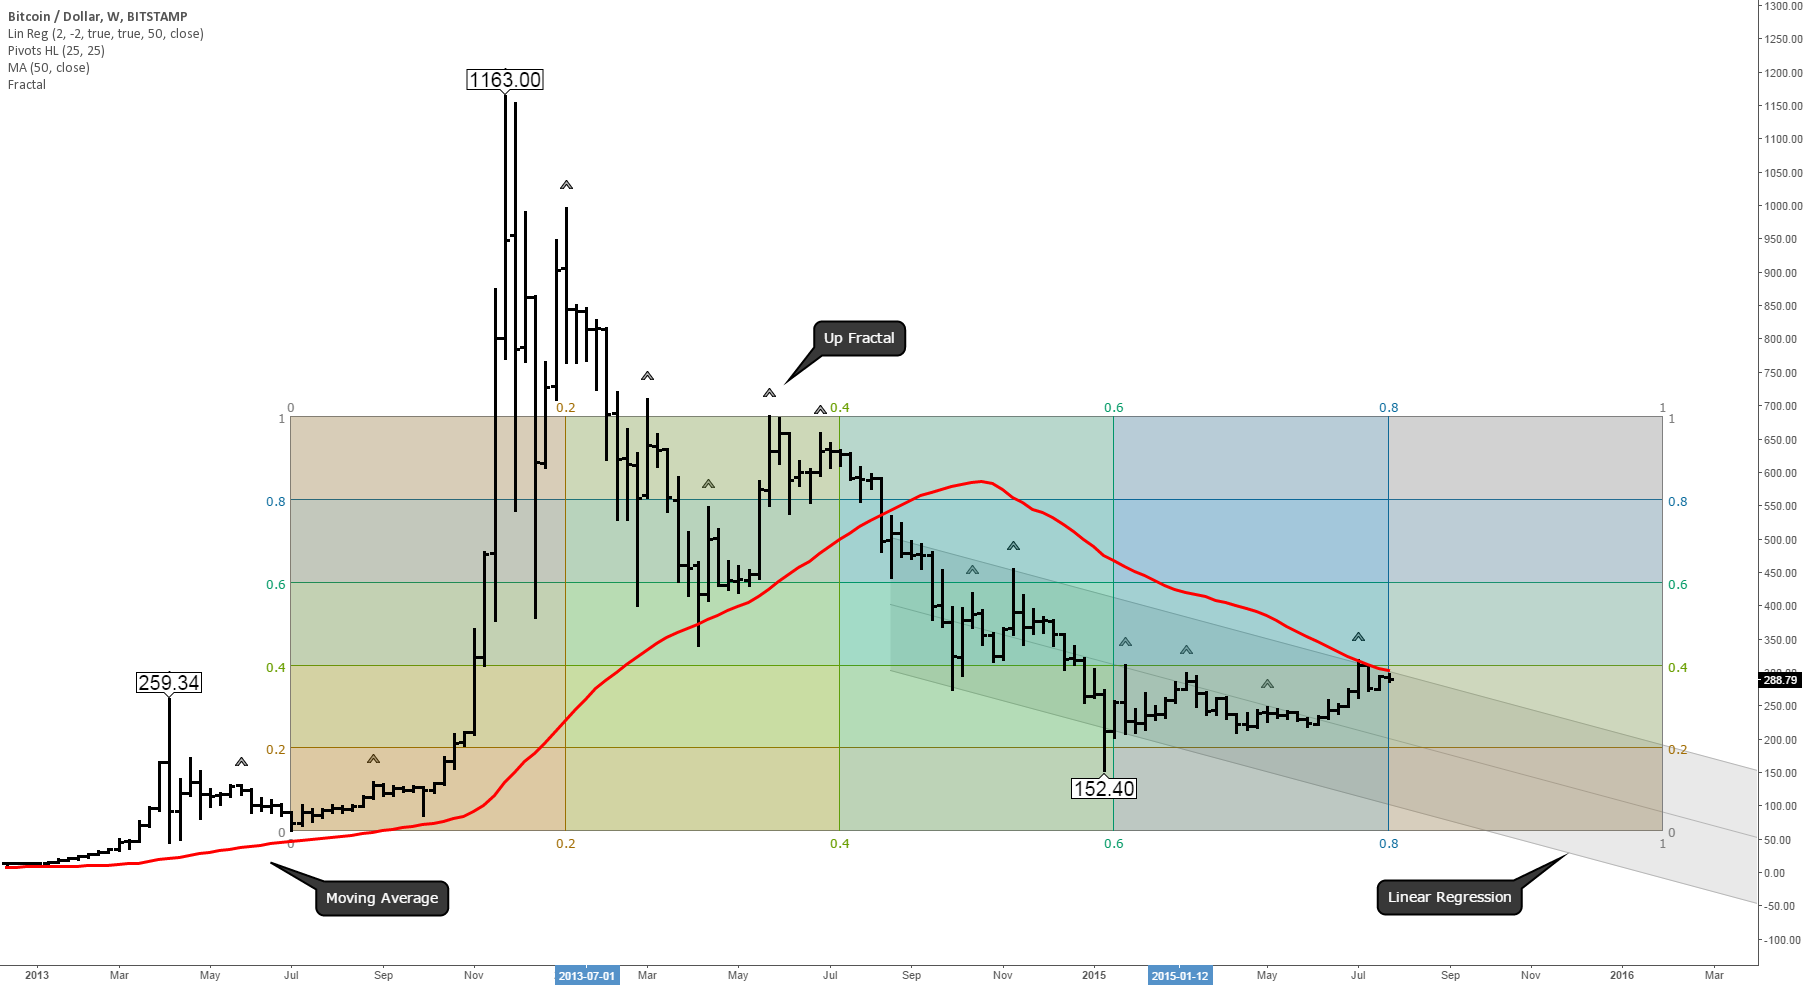 Bitcoin Price Trend - A Macro Outlook For Summer-Winter 2015